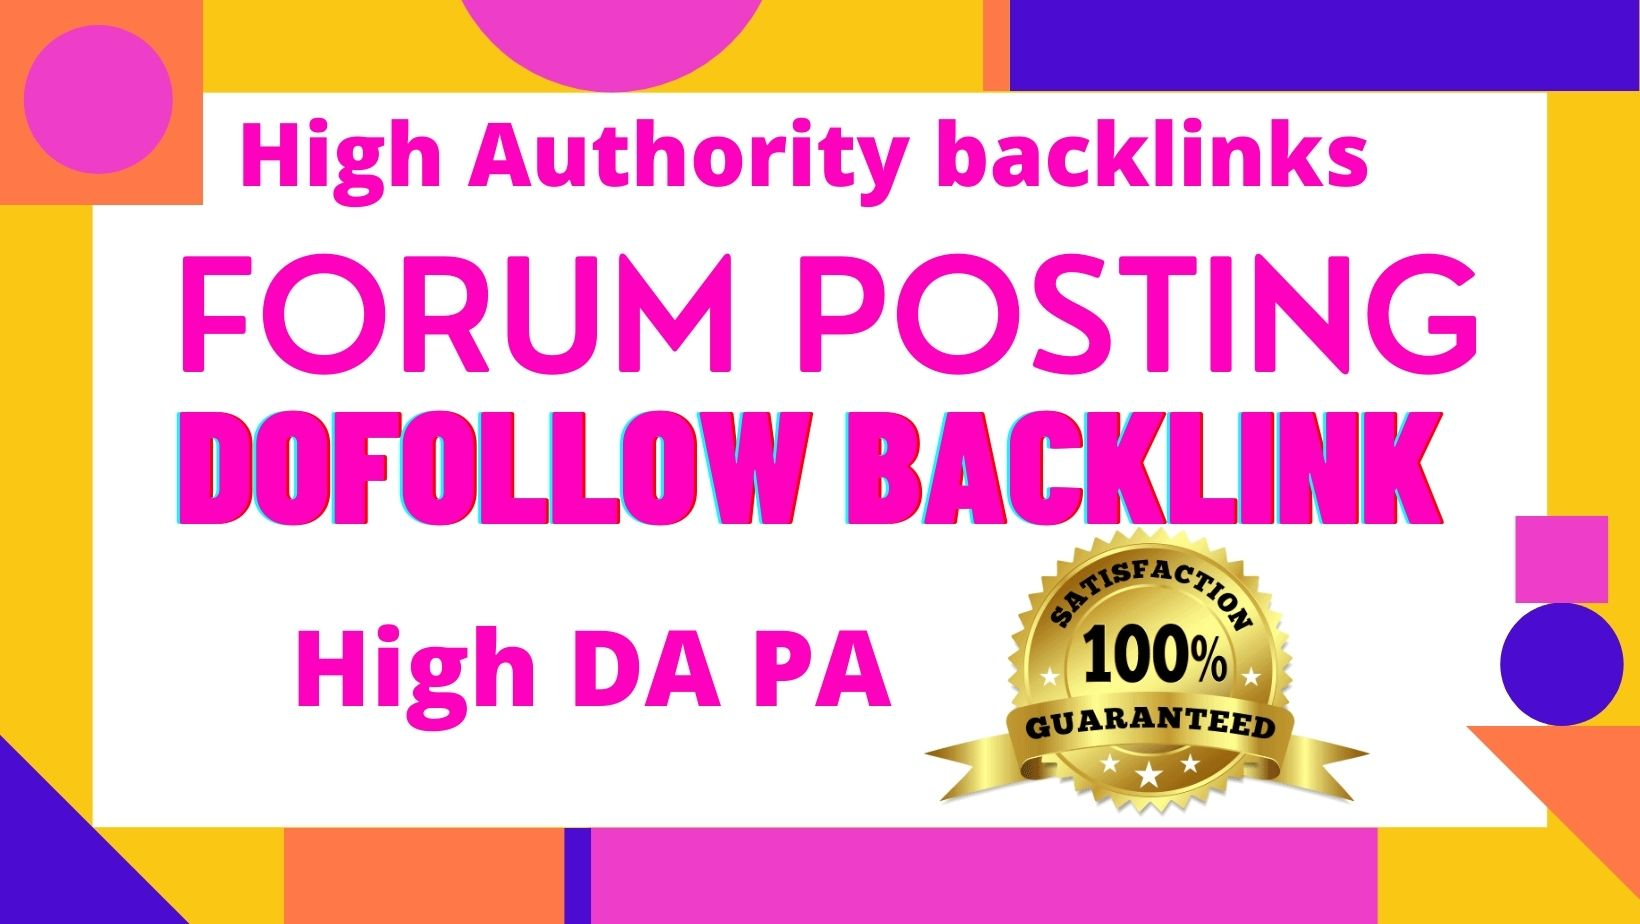 I Will Create 50 high authority forum posting backlinks